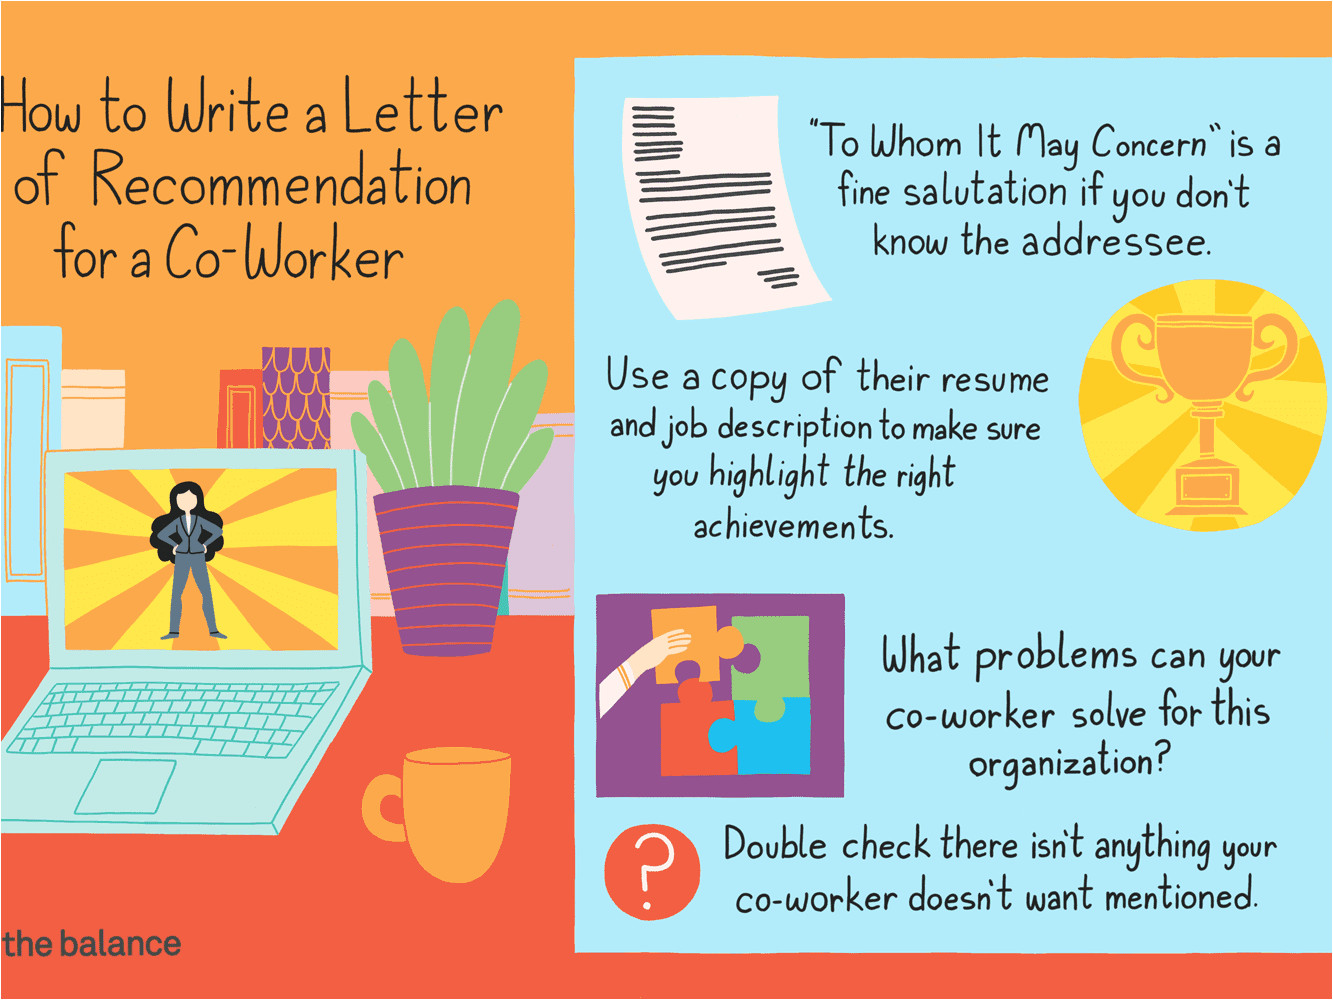 how to write a letter of recommendation for a co worker 2060459 v1 5bc4bdbbc9e77c00514ff2f7 png